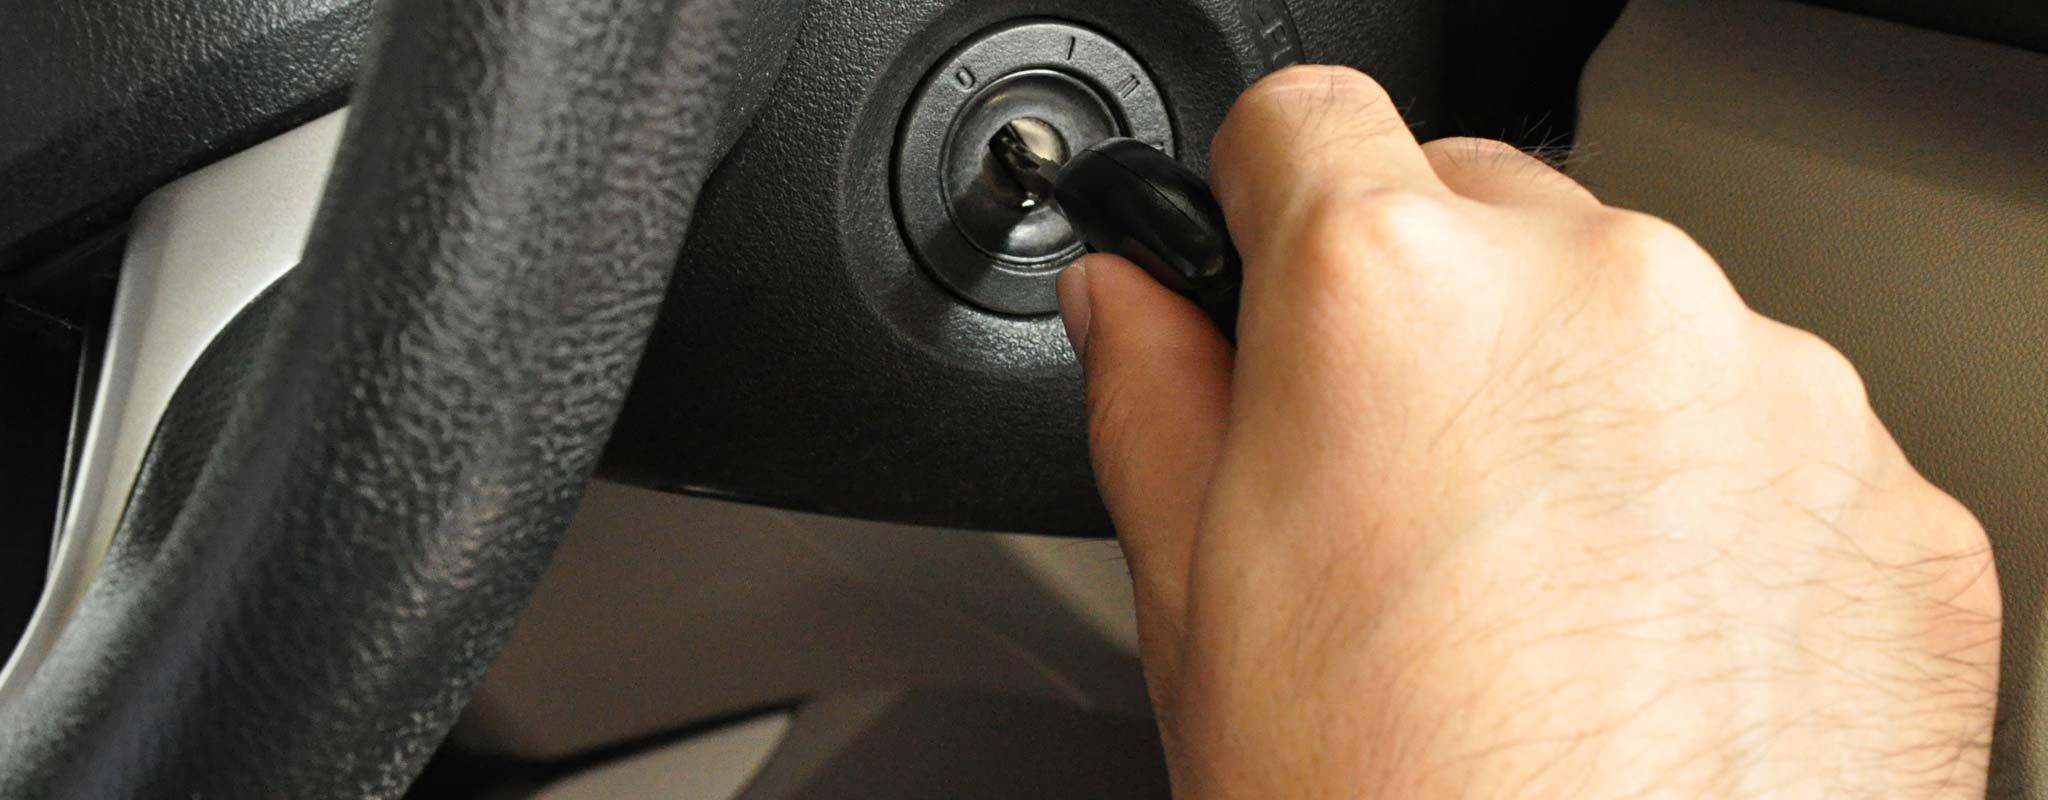 A hand putting a key in a car ignition.